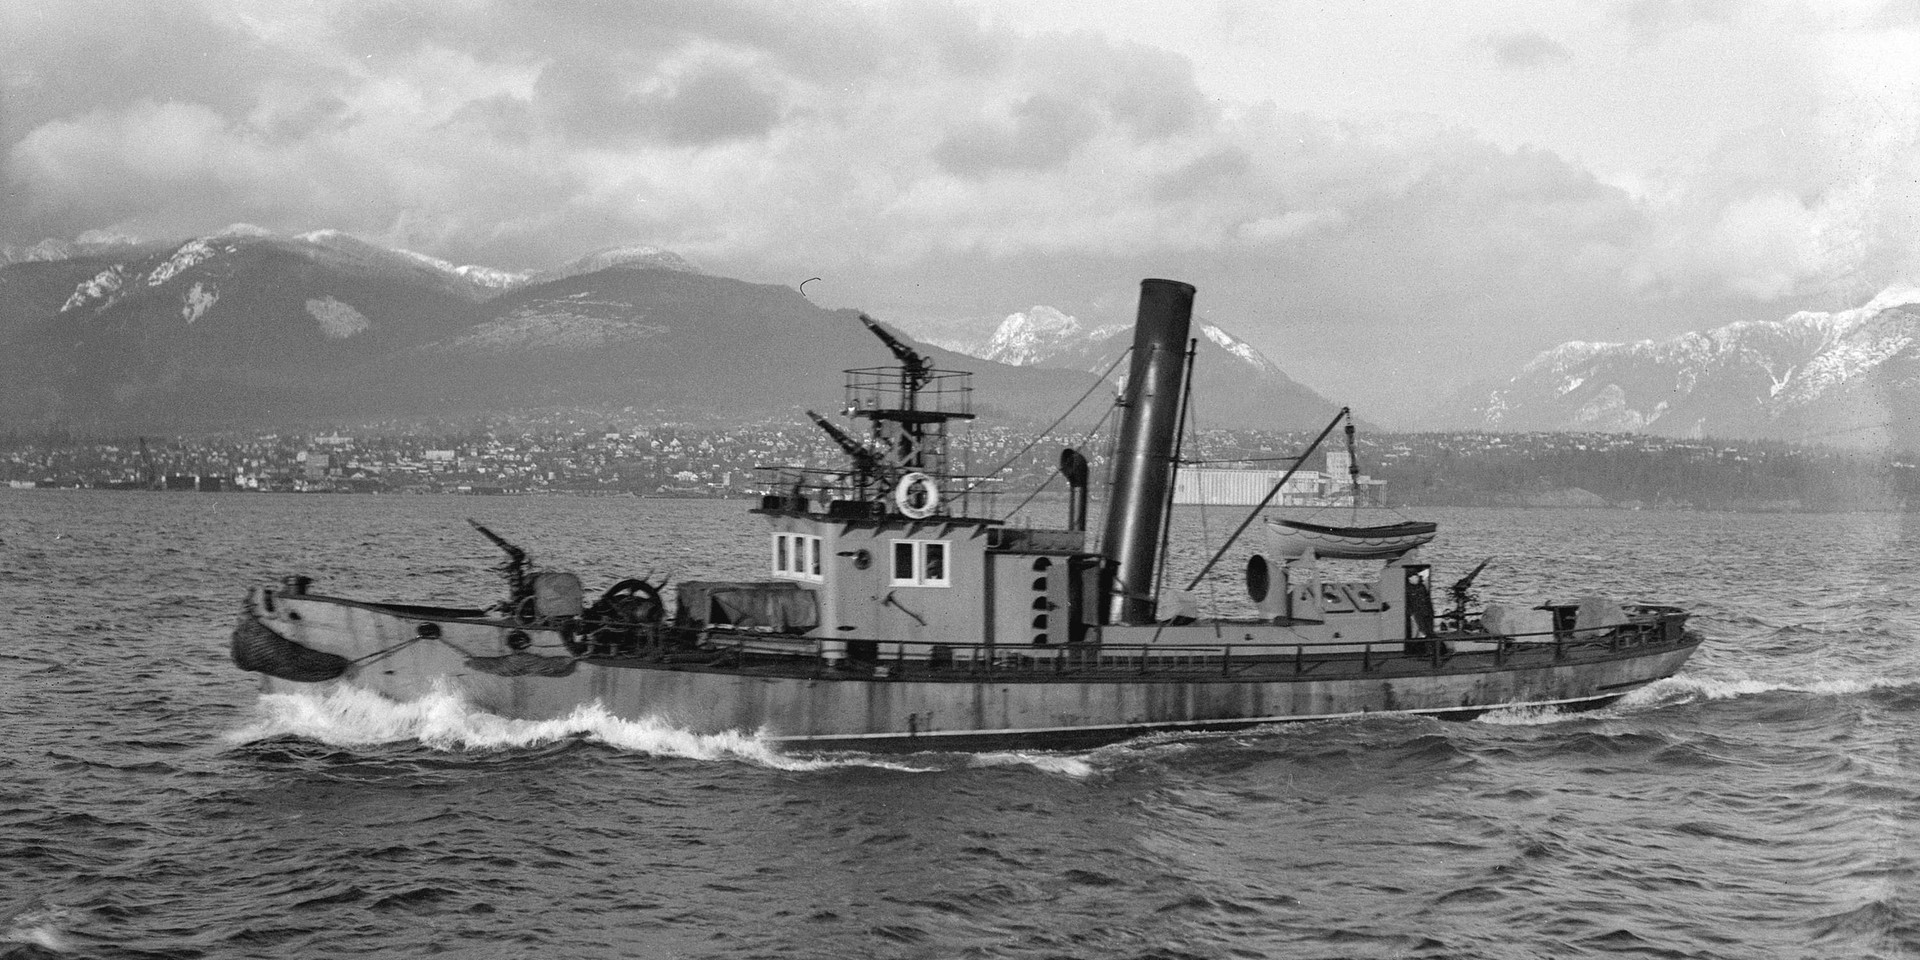 S.S. ORION (1930-1937)